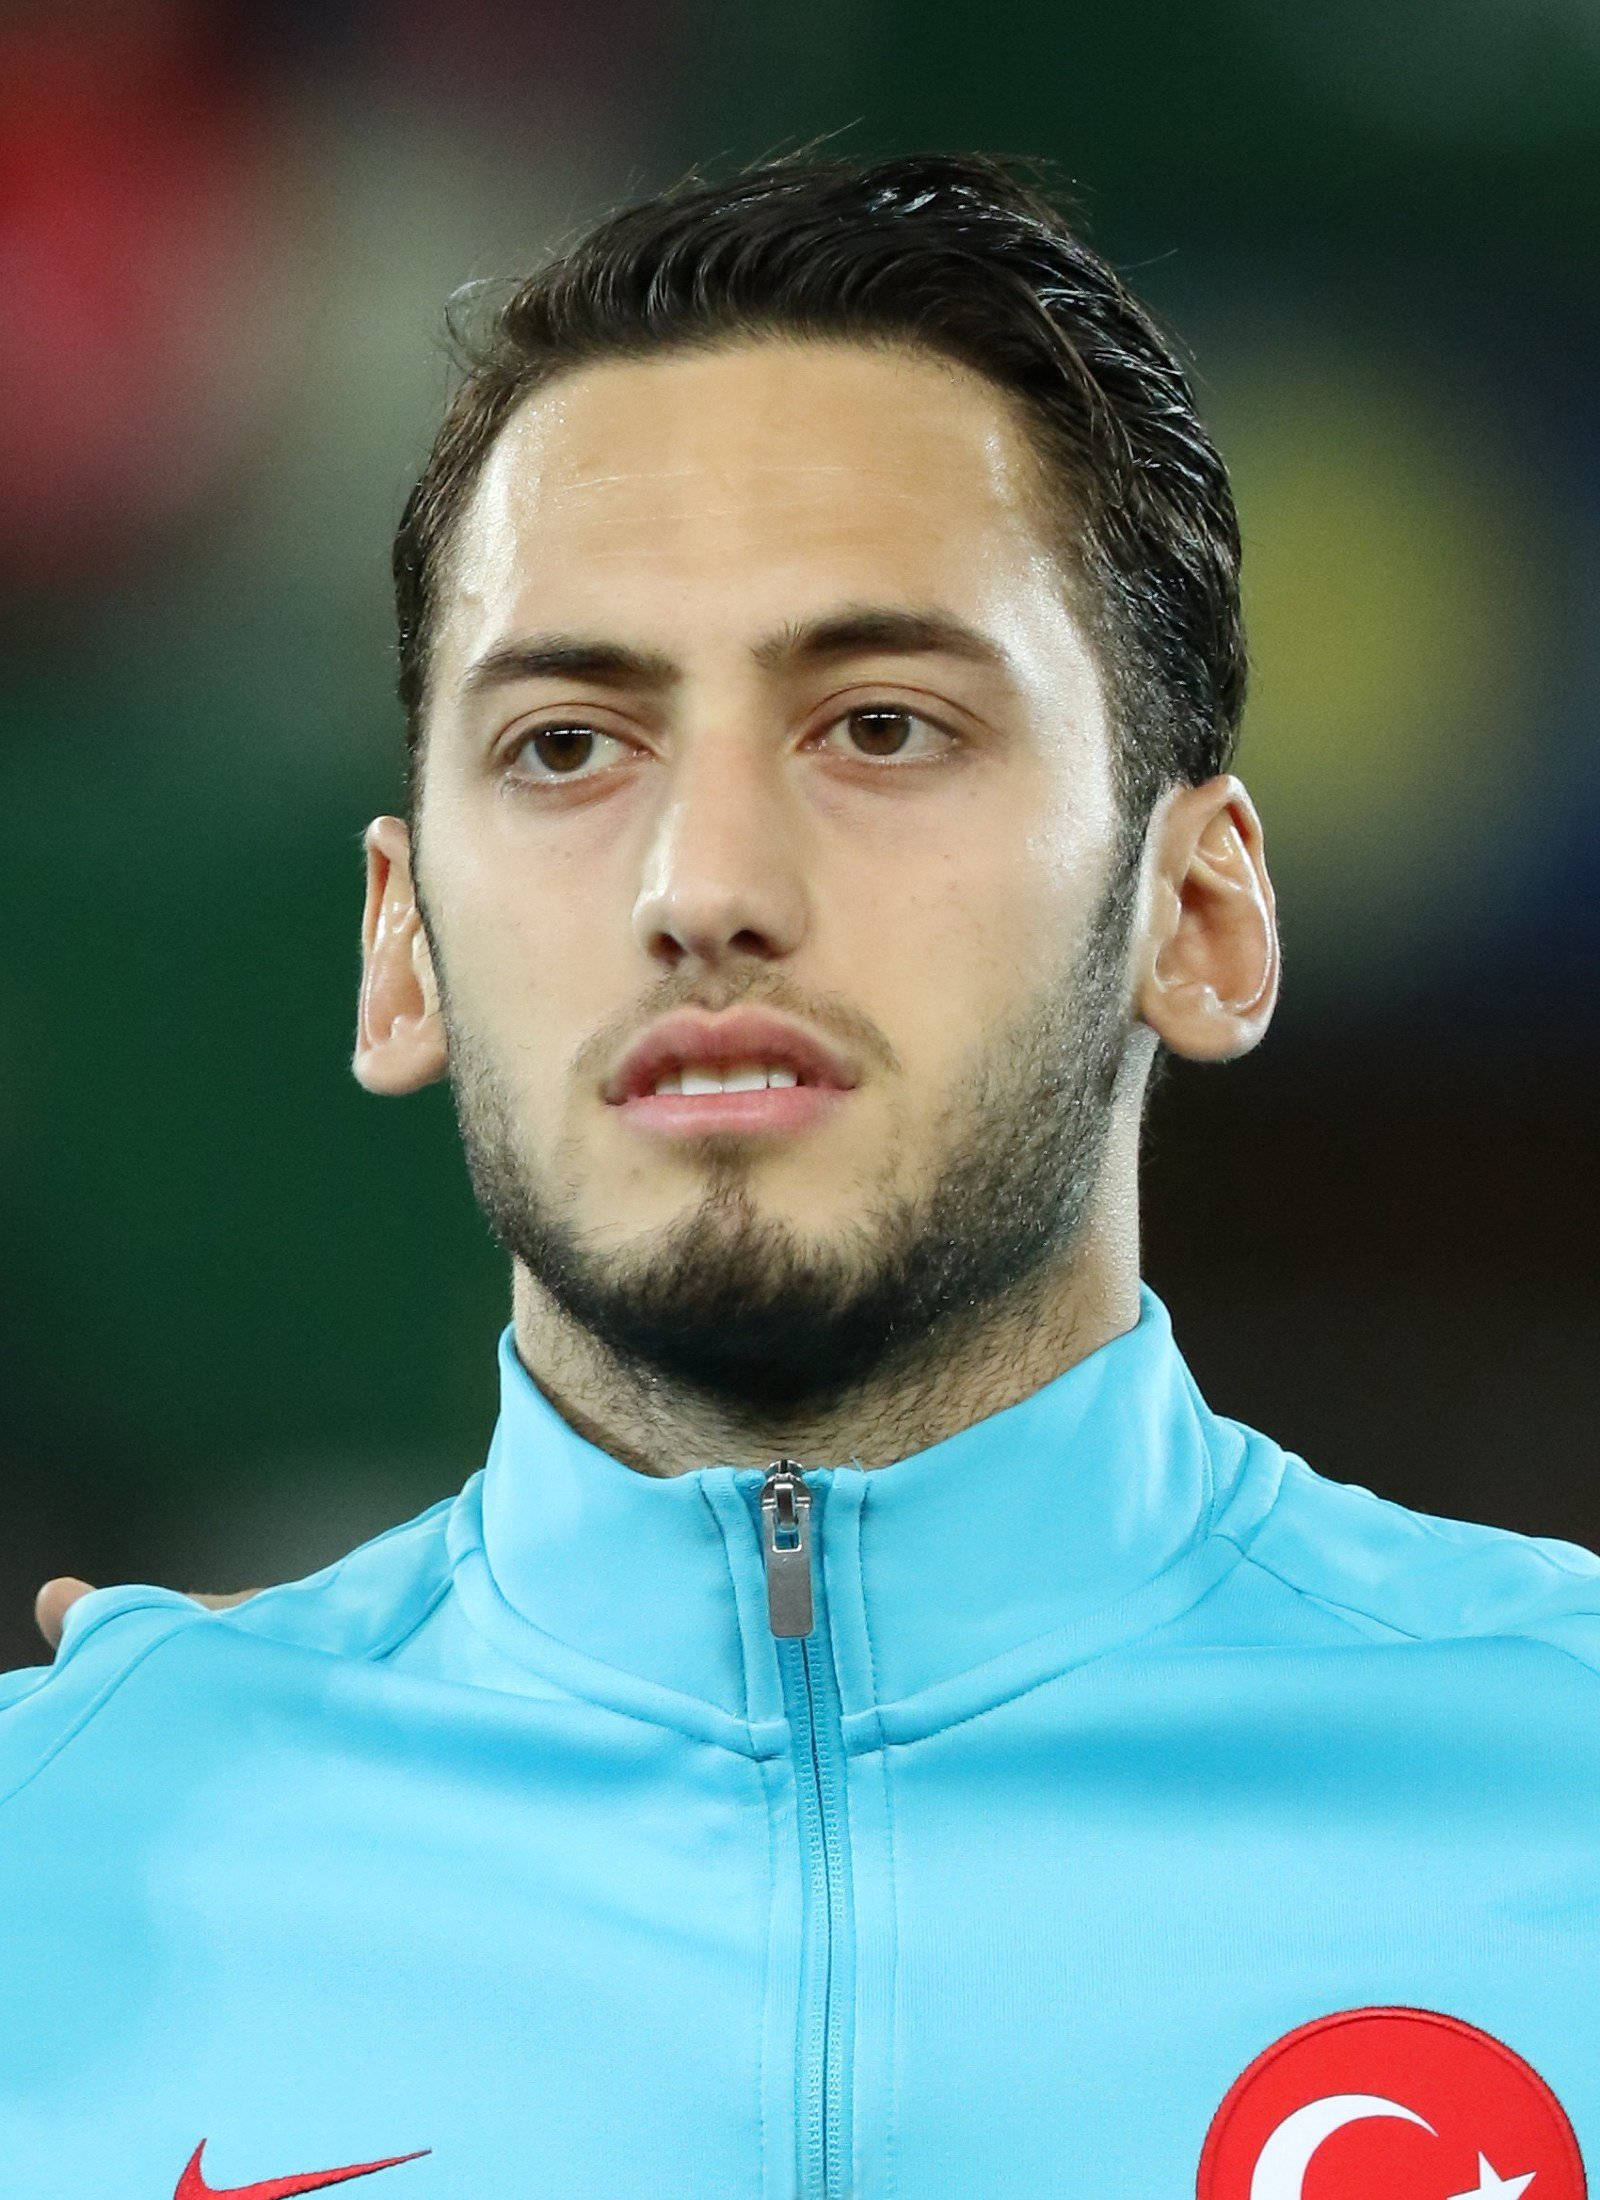 The 24-year old son of father Huseyin Çalhanoğlu and mother(?) Hakan Çalhanoğlu in 2018 photo. Hakan Çalhanoğlu earned a  million dollar salary - leaving the net worth at 11.8 million in 2018